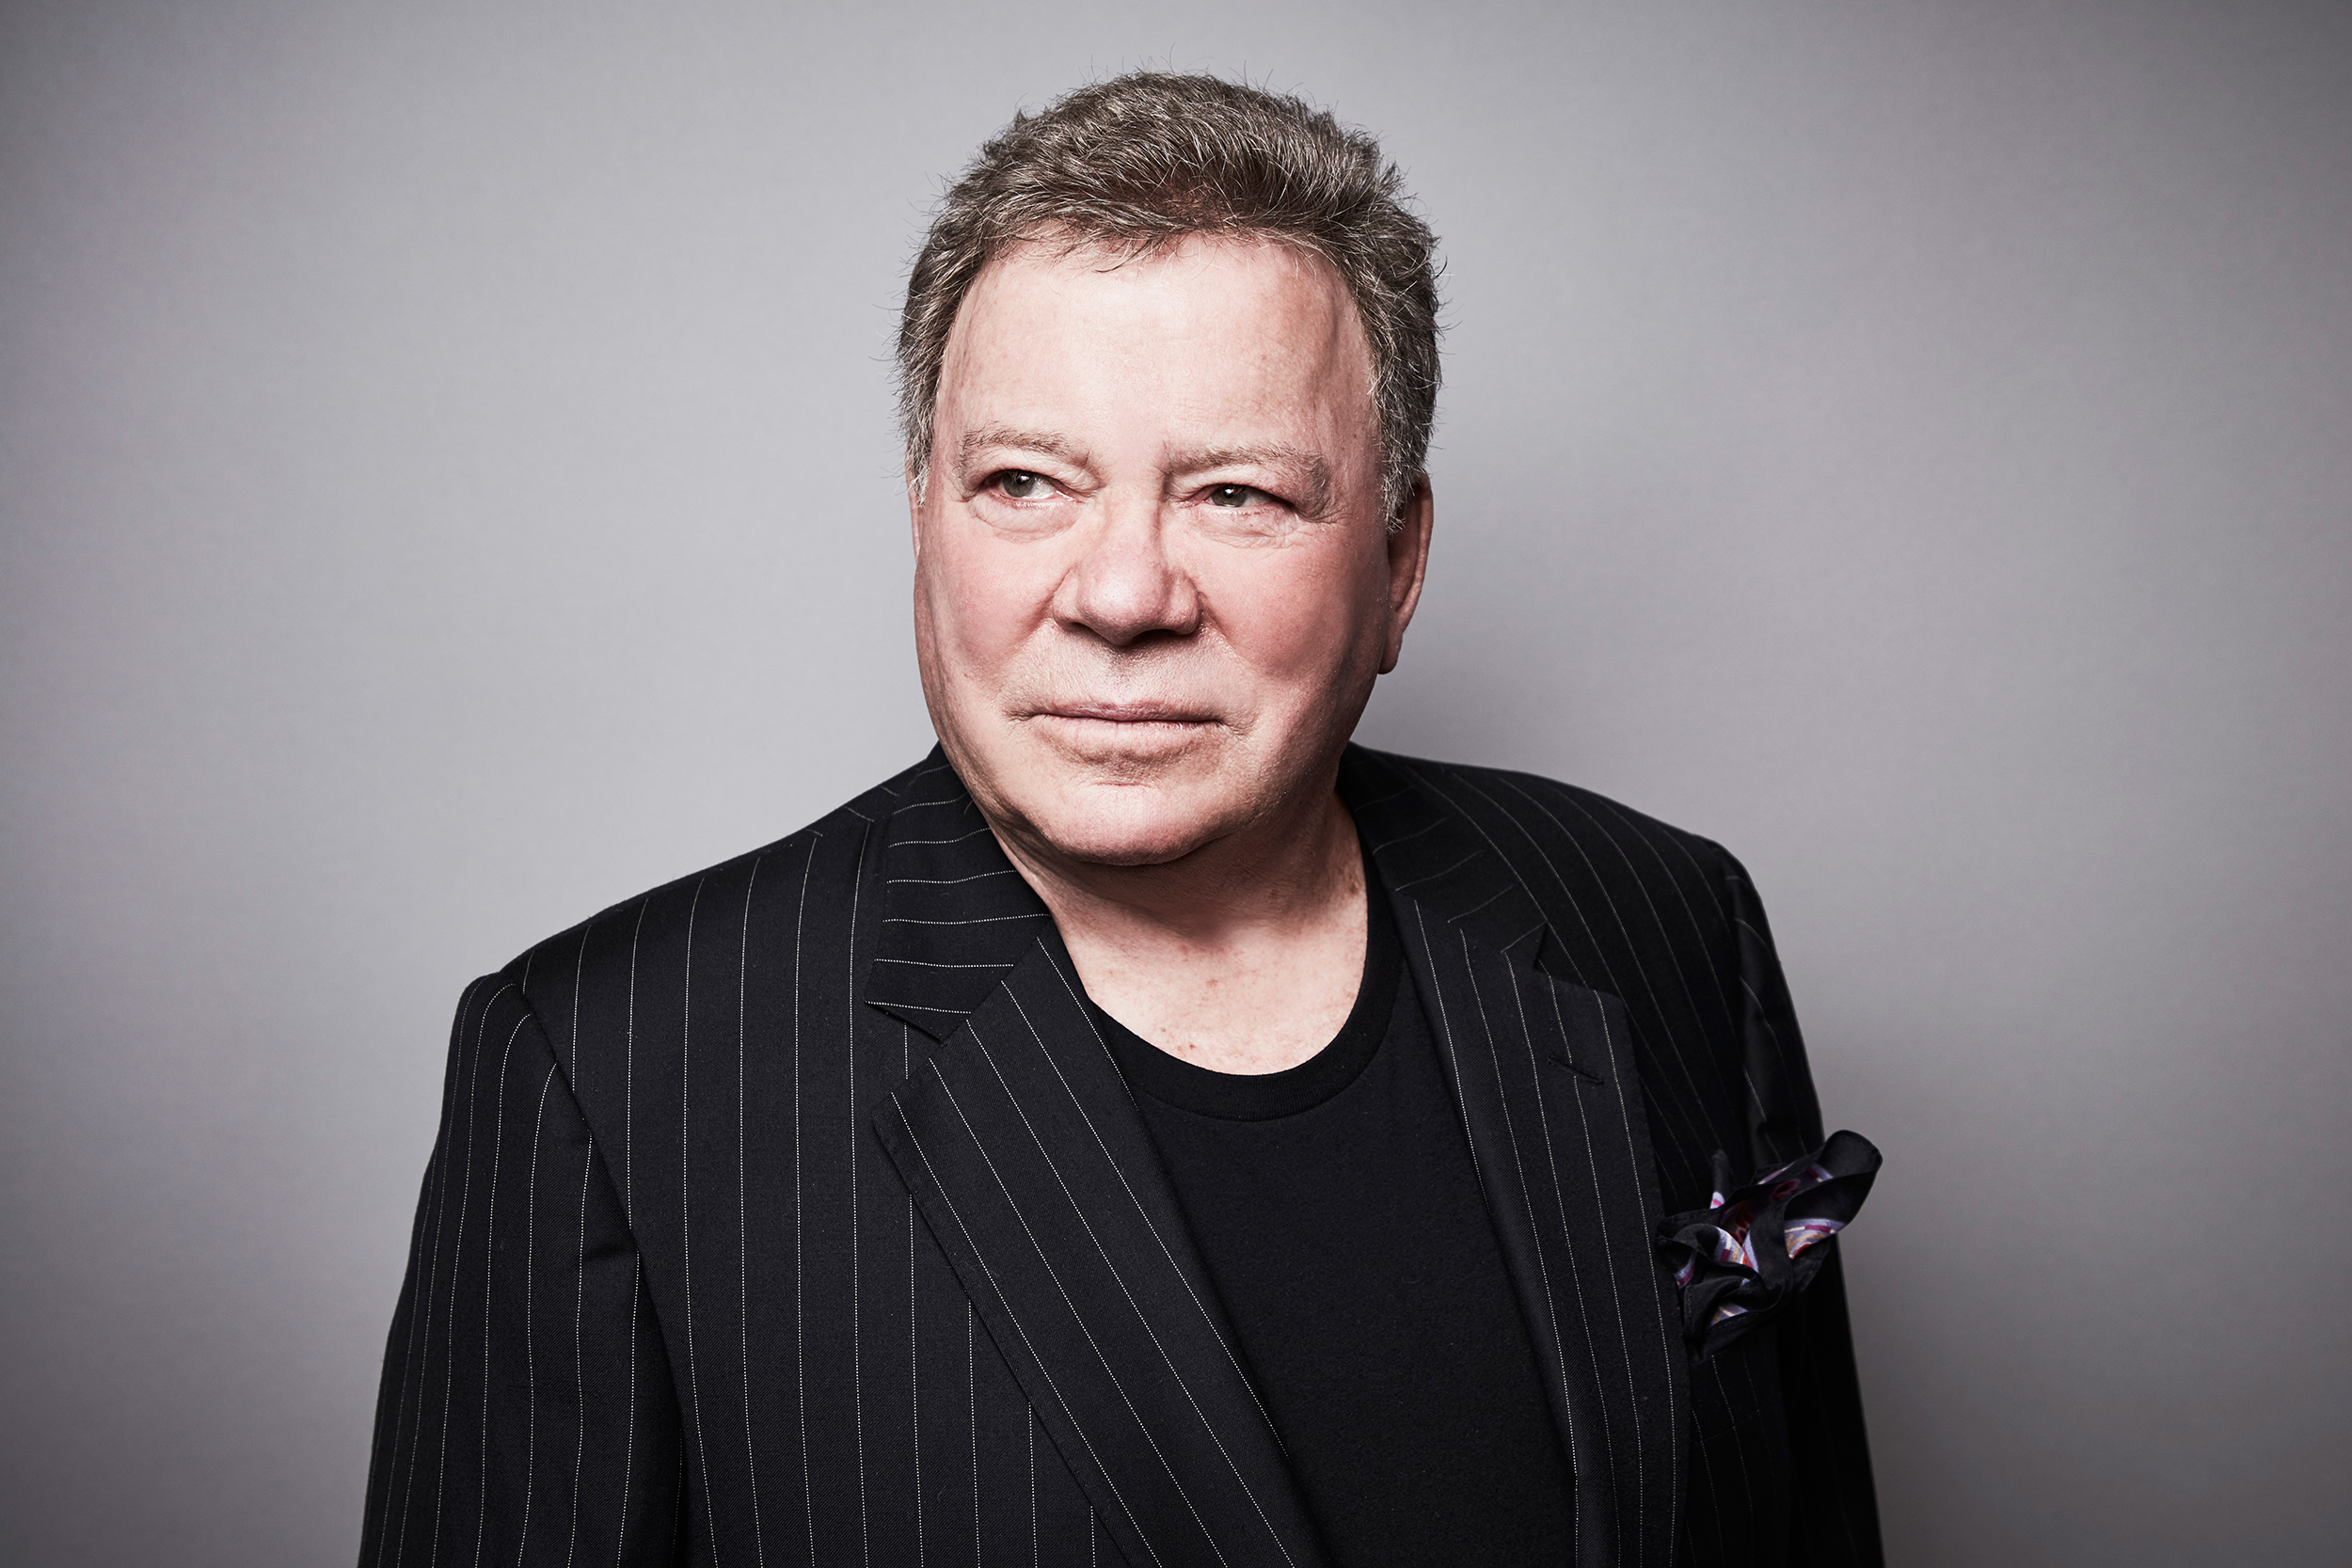 William Shatner says he looks forward to seeing 'the vastness of space'